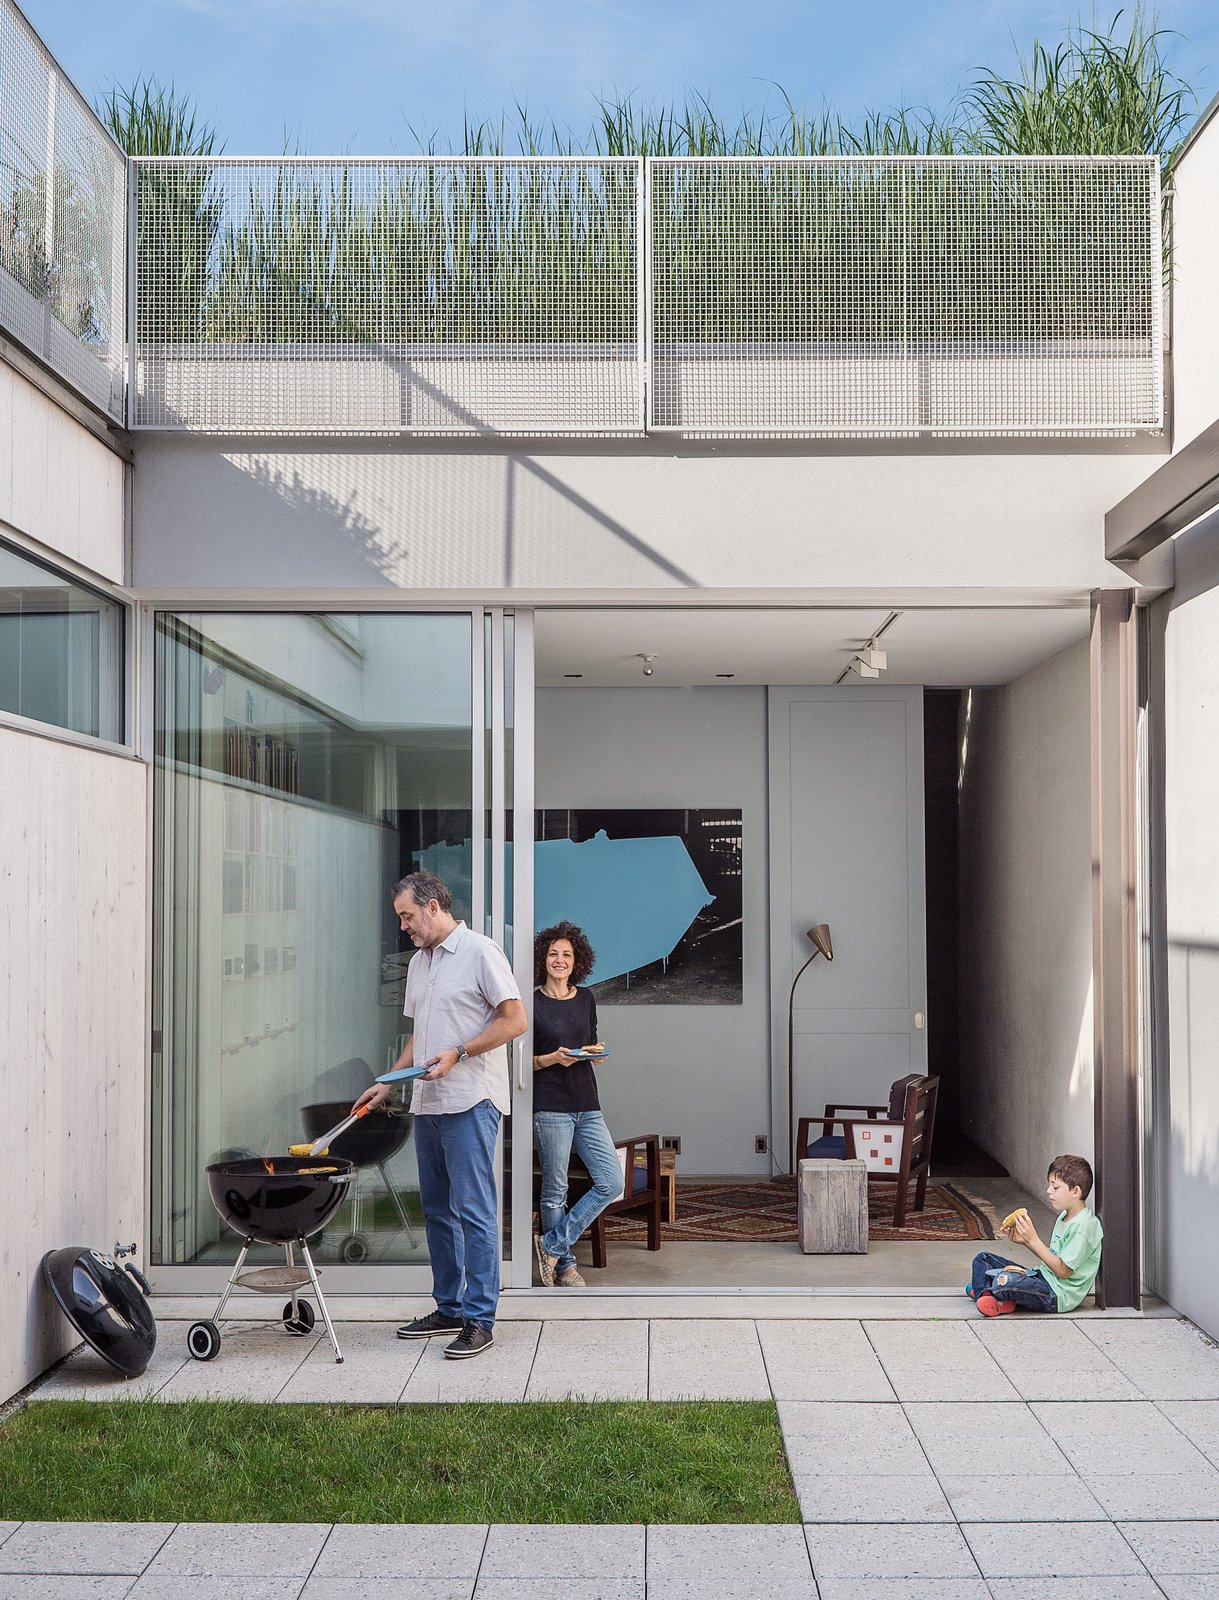 """Outdoor, Small Patio, Porch, Deck, Concrete Patio, Porch, Deck, Grass, and Back Yard The home's enclosed courtyard sits at """"the heart of the structure,"""" says Baumann, who resides with his wife, Lisa Sardinas, and eight-year-old son, Oskar. """"This is clearly the dominant space; everything flexes towards it."""" Baumann cast the square concrete floor tiles himself, enlisting the help of his son. A small, neat patch of grass—a playful nod to the archetypal domestic lawn—is edited down to a charming folly.  Photos from A Rooftop Garden Completes This Urban Pastoral Home"""